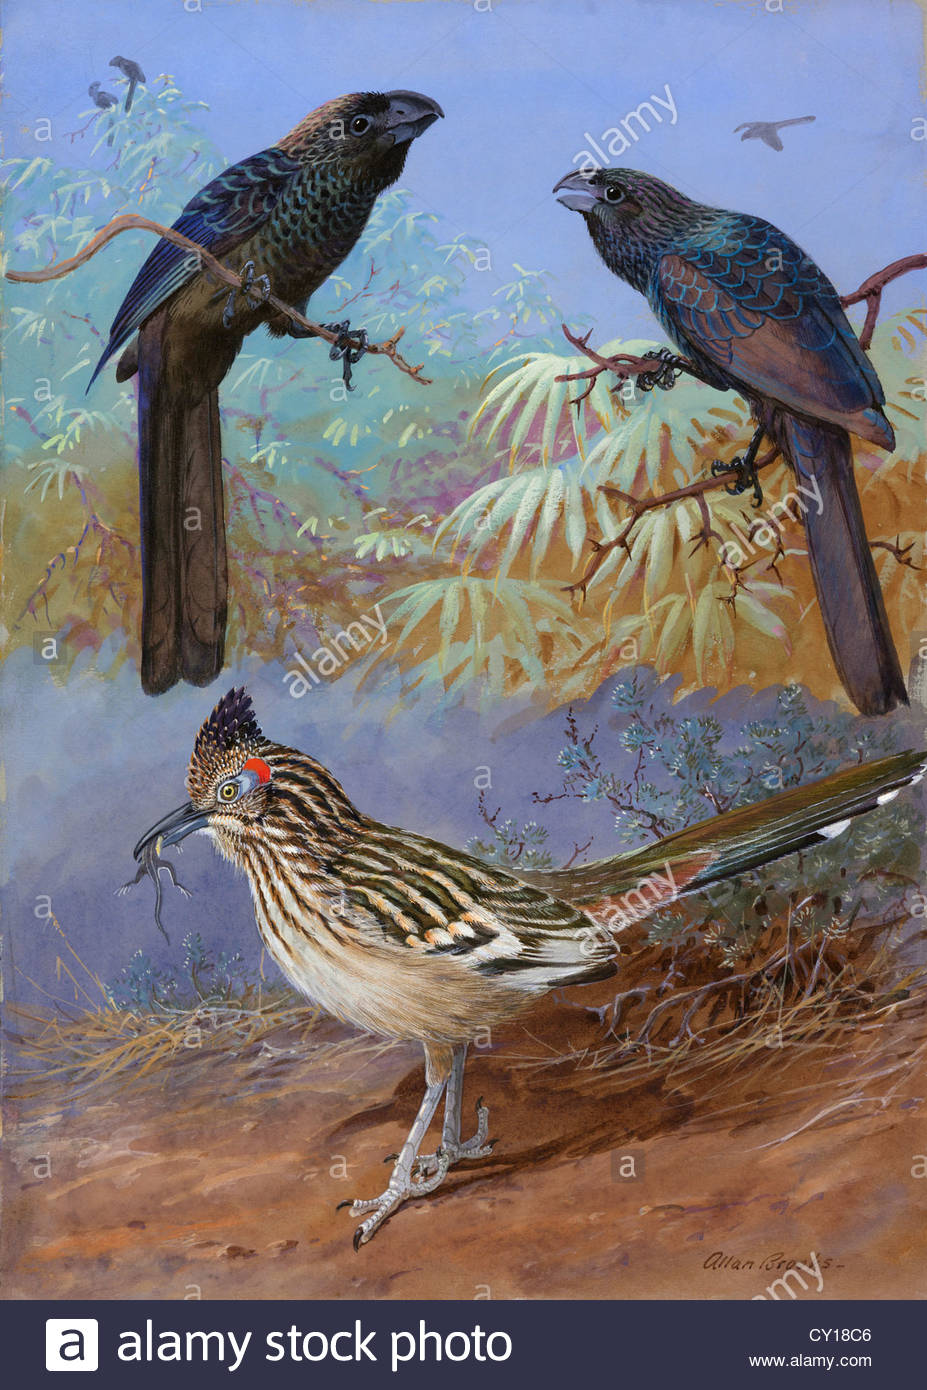 A painting of a smooth-billed ani, groove-billed ani and a roadrunner. Stock Photo